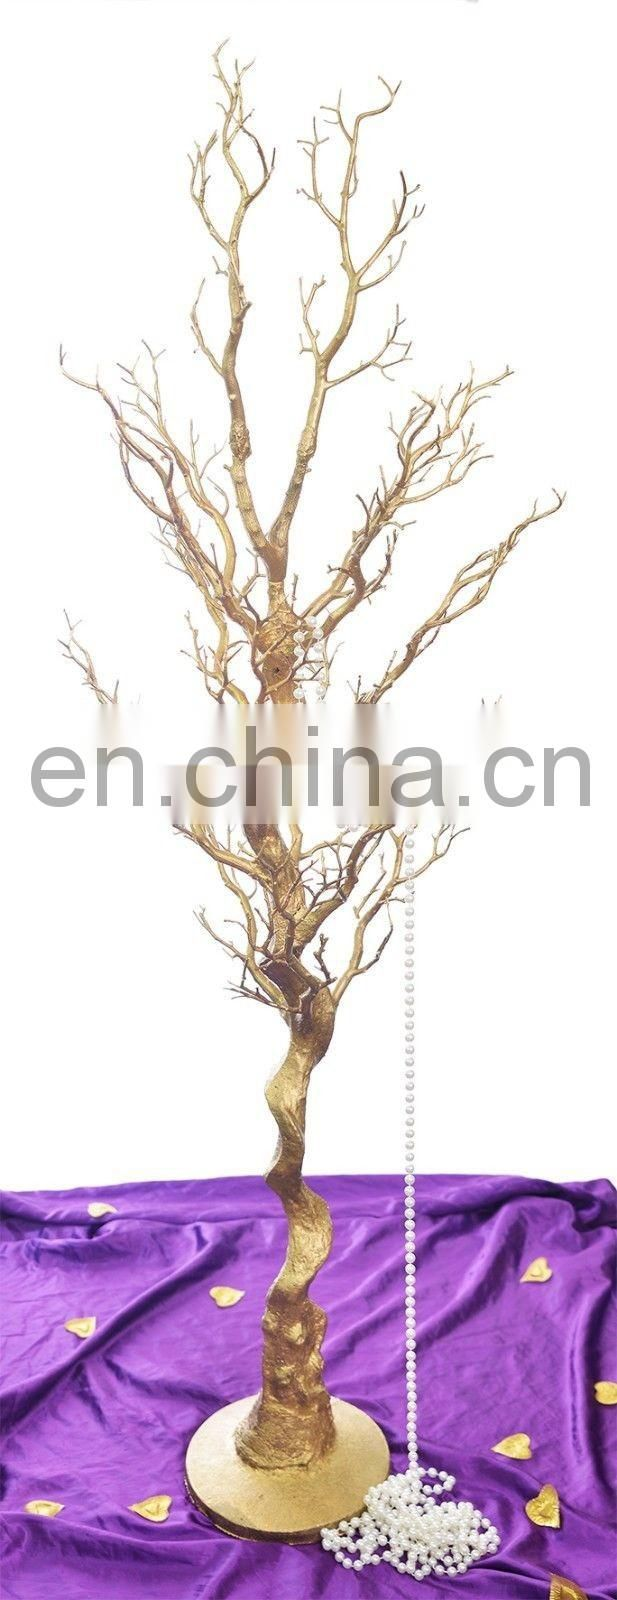 80cm 1.2m 1.8m Gold Manzanita Wedding Wishing Tree For Venue Centrepiece Decoration